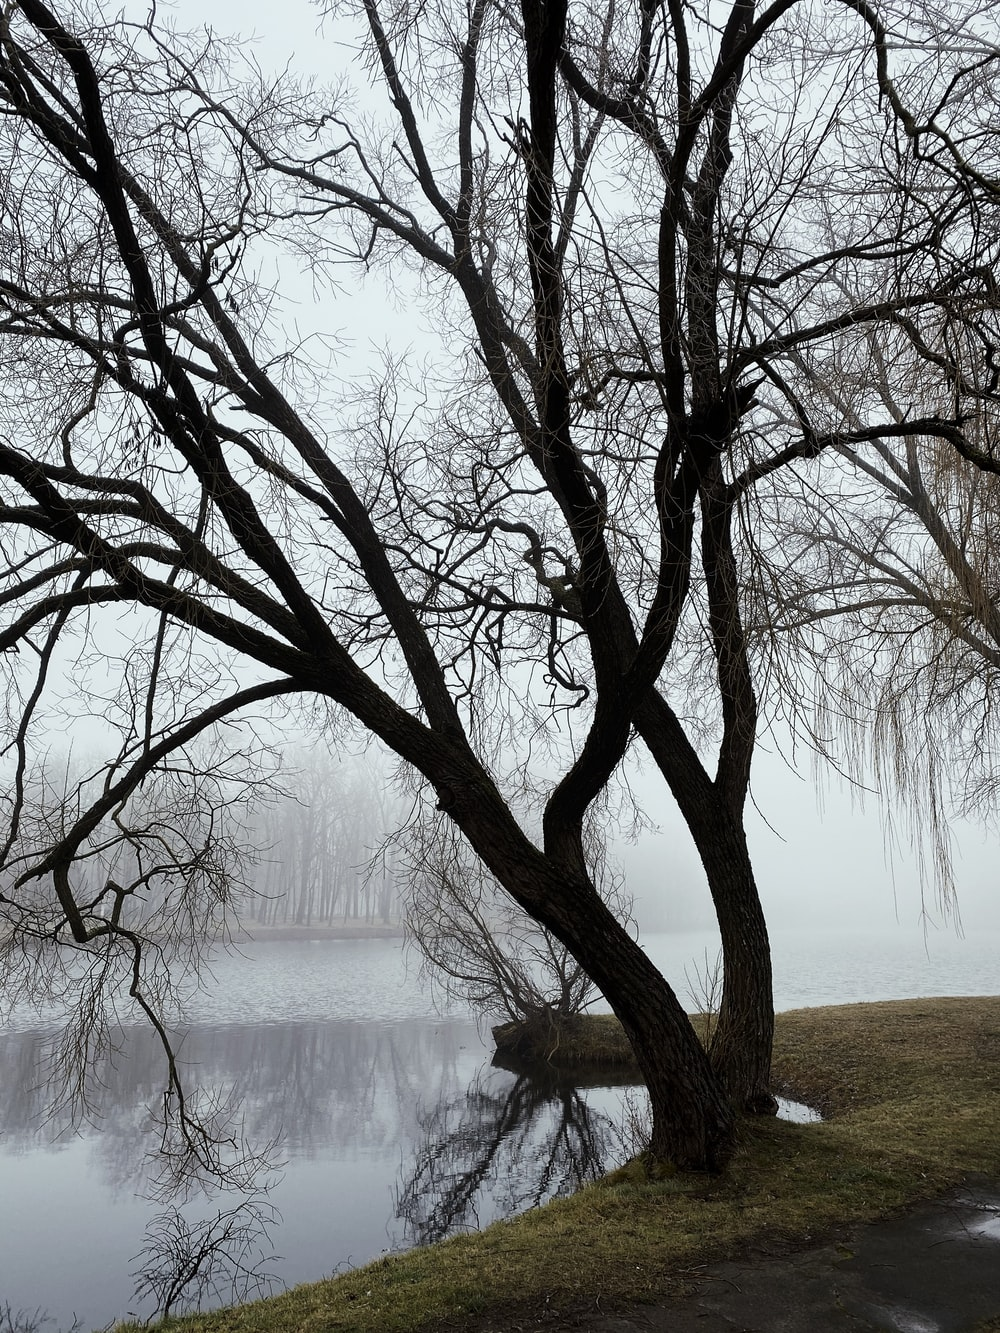 leafless tree near body of water during daytime